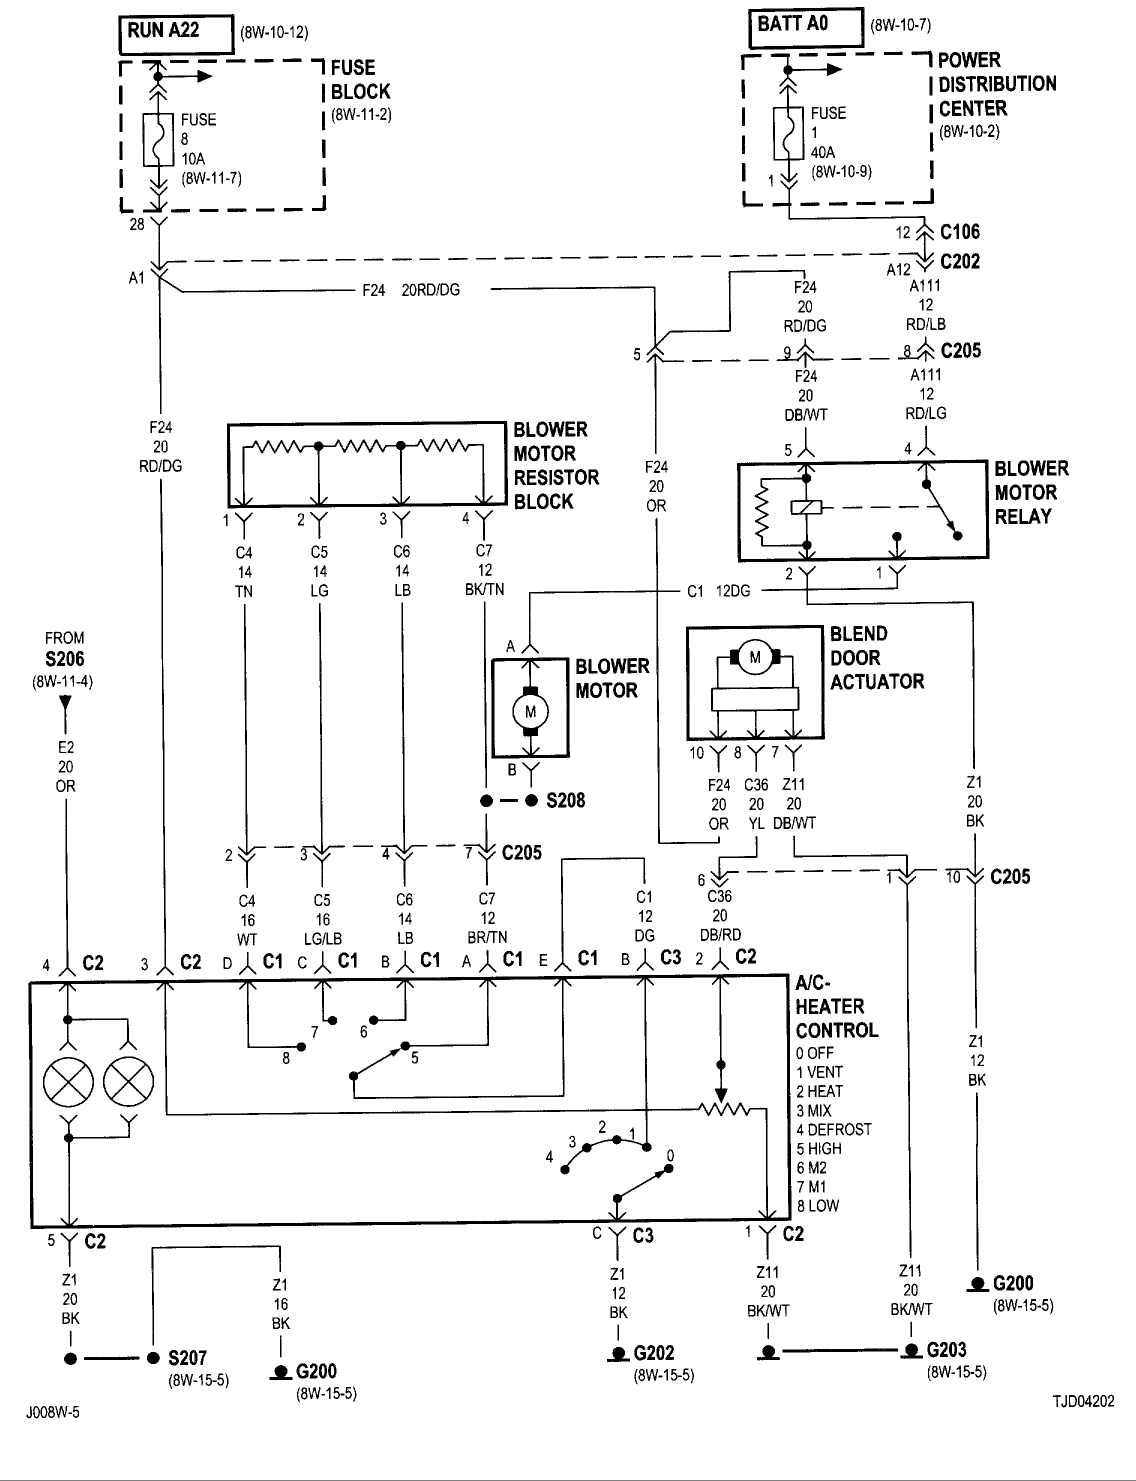 2000 jeep wrangler wiring diagram Collection-jeep wrangler engine wiring for 2000 example electrical circuit u2022 rh electricdiagram today 2000 Jeep Wrangler Vacuum Hose Diagram 2009 Jeep Wrangler 19-a